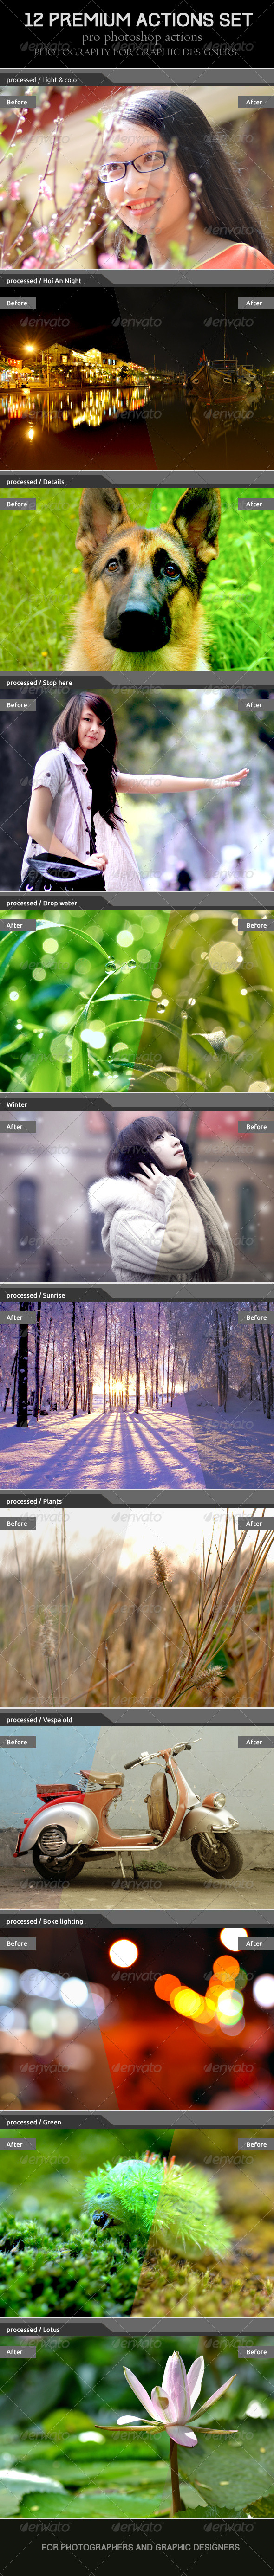 GraphicRiver 12 Premium Actions Set 7263429